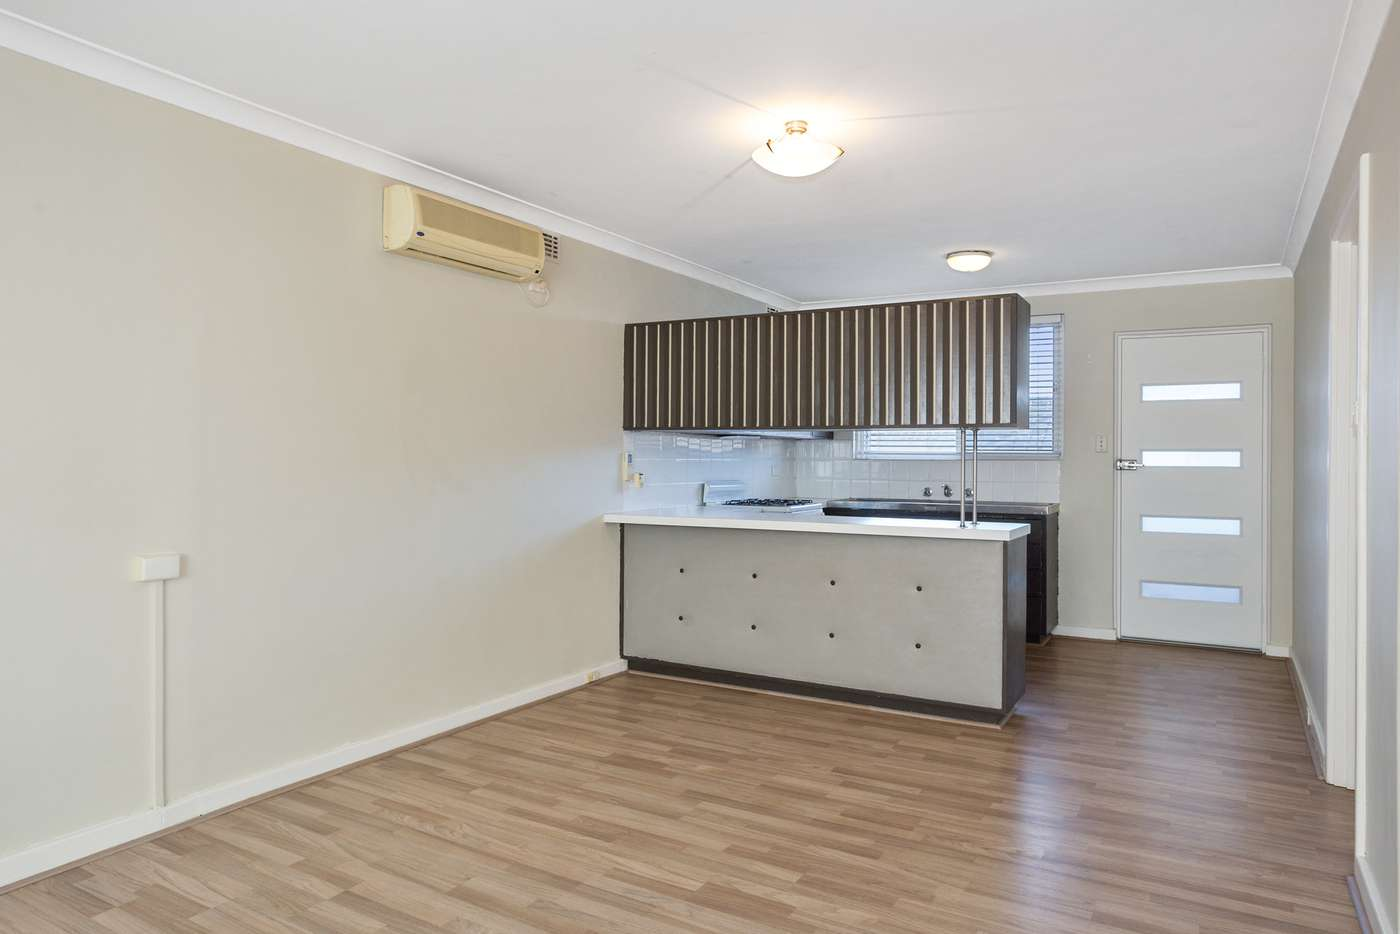 Fifth view of Homely apartment listing, 4/40 Matheson Road, Applecross WA 6153